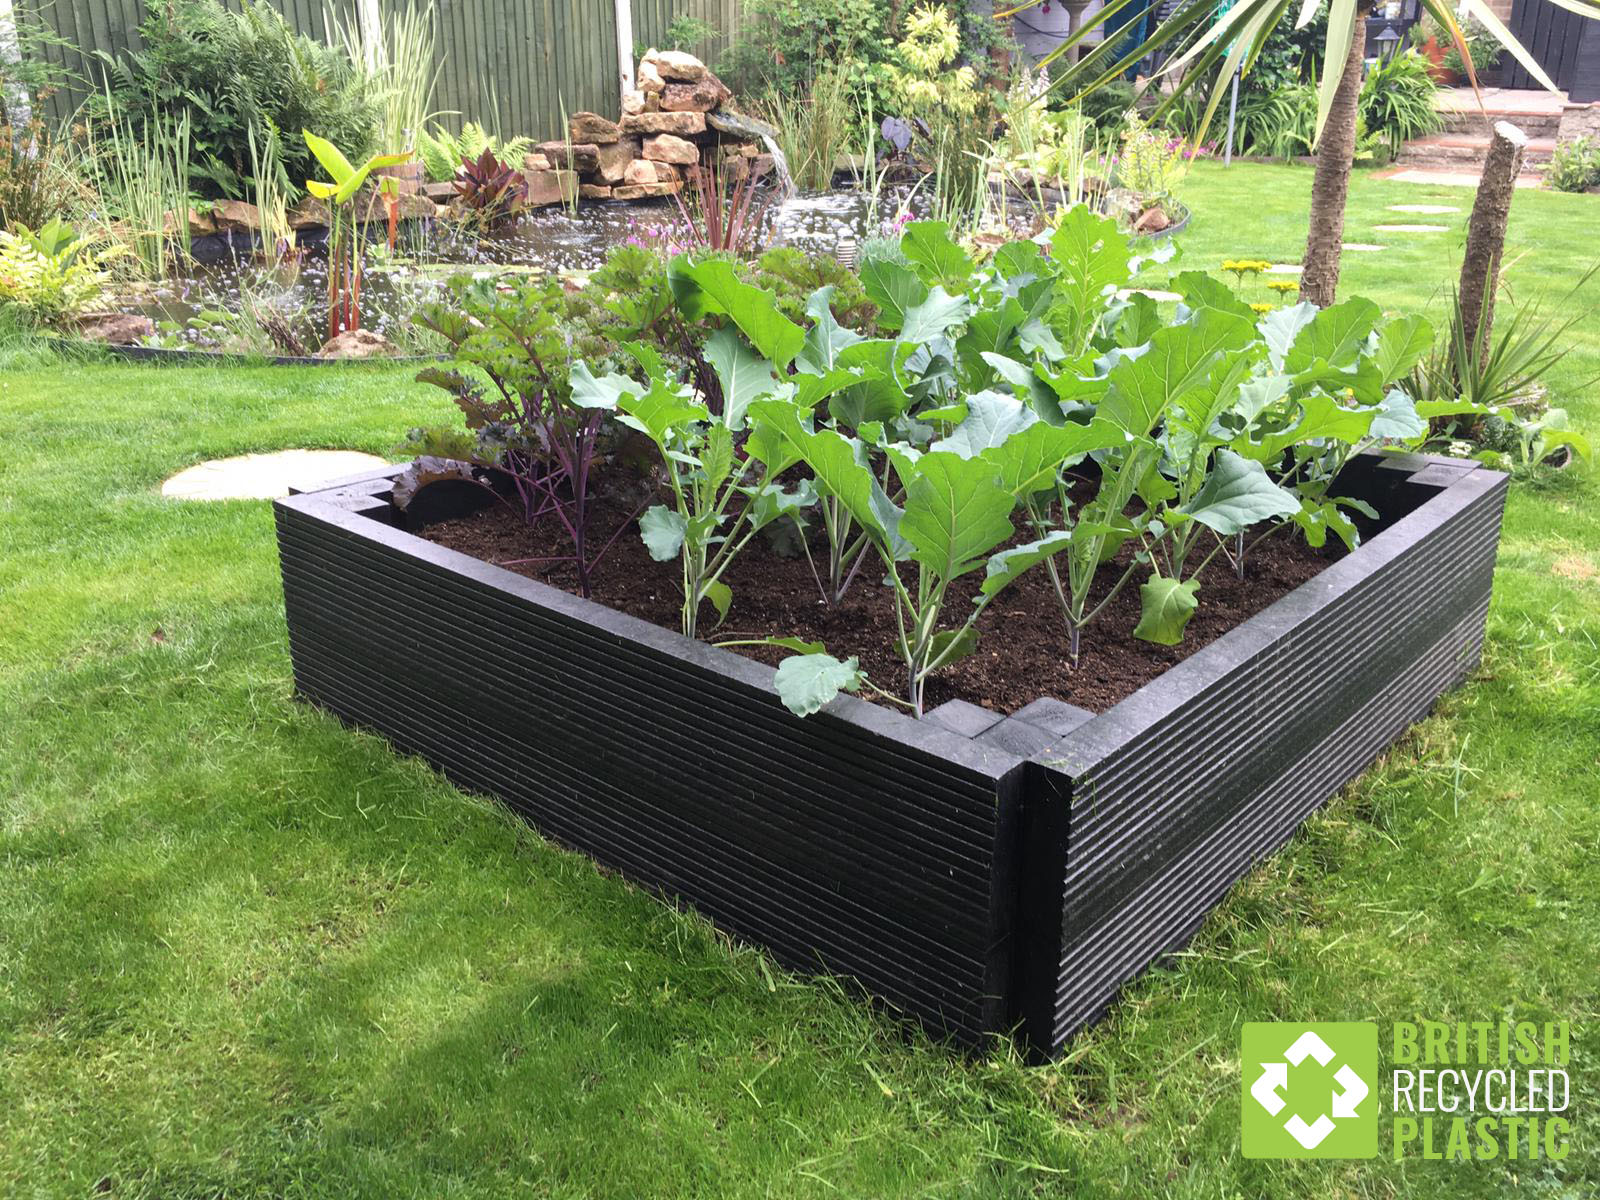 A standard 1 metre by 1 metre by 300mm recycled plastic raised bed kit